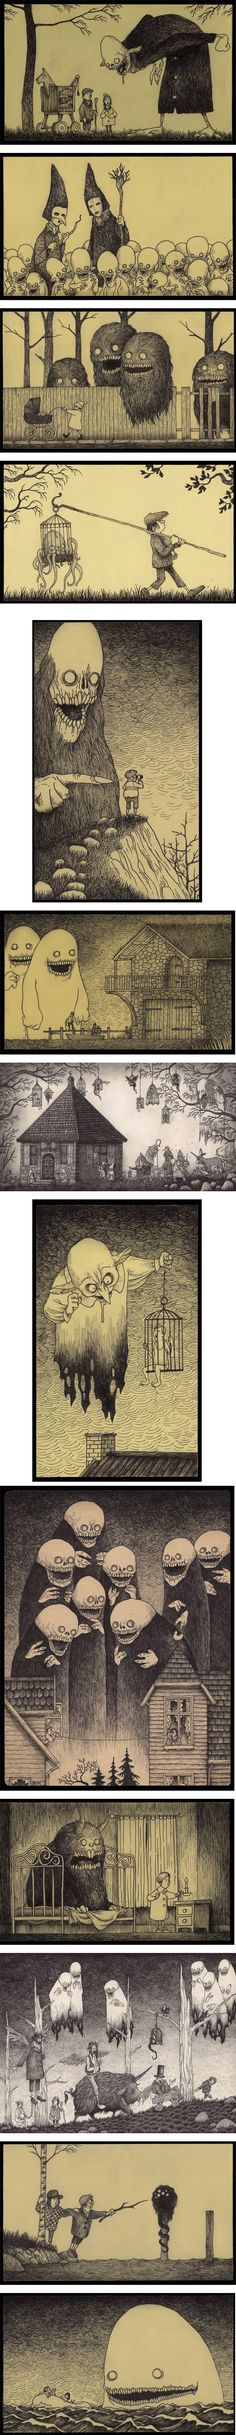 John Kenn - Post-it Monstres